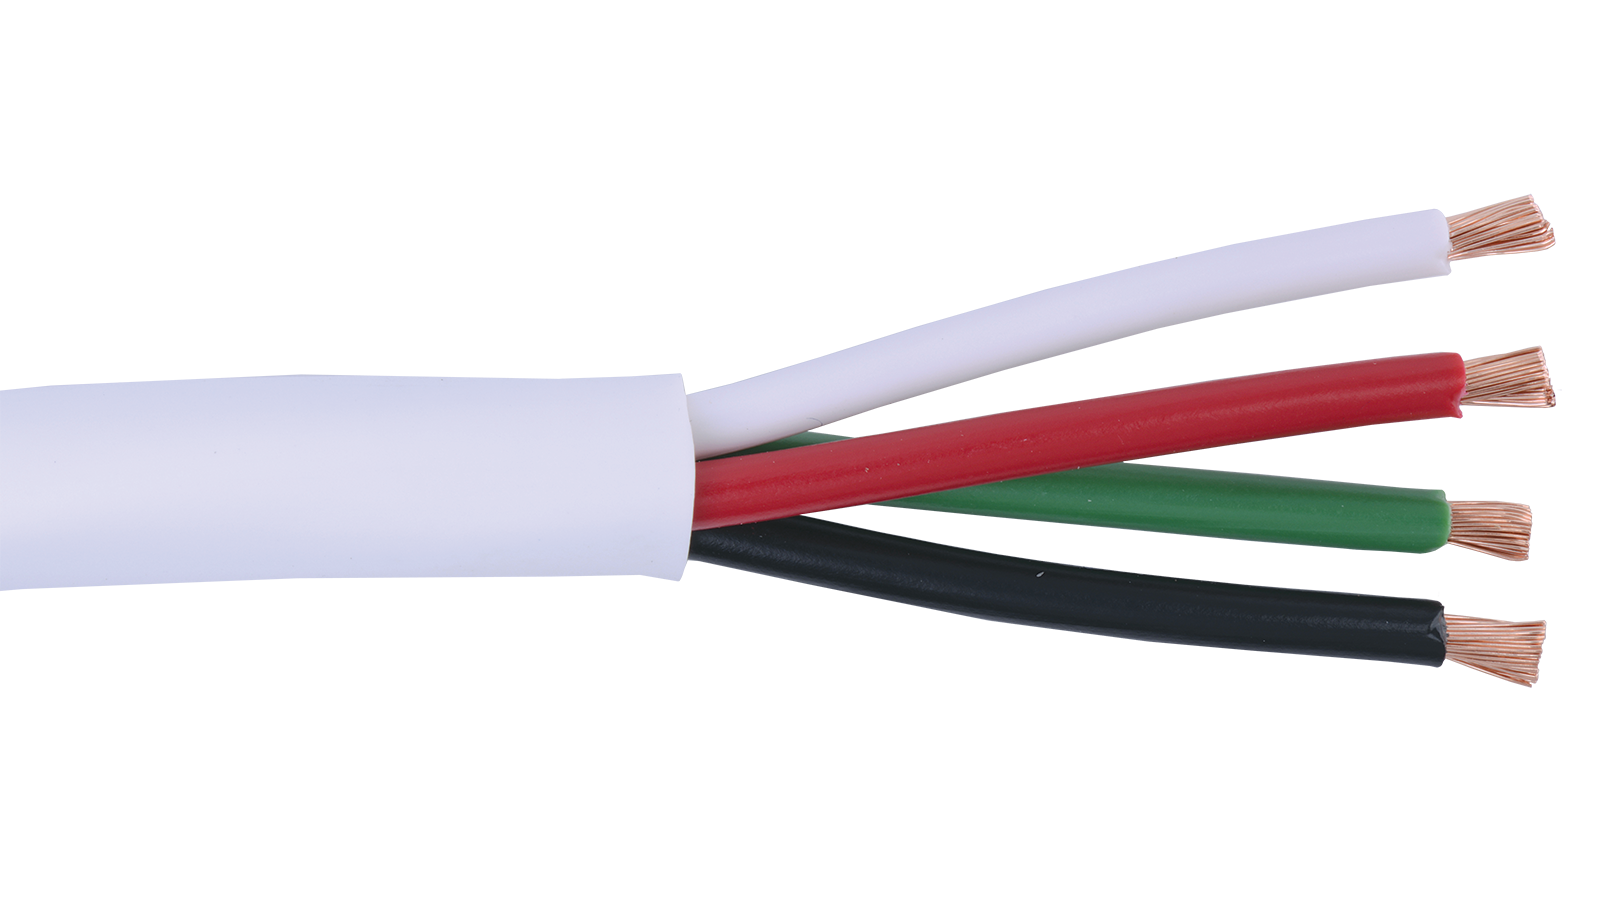 4 Awg Cable : C ko wht knockout awg conductor speaker cable